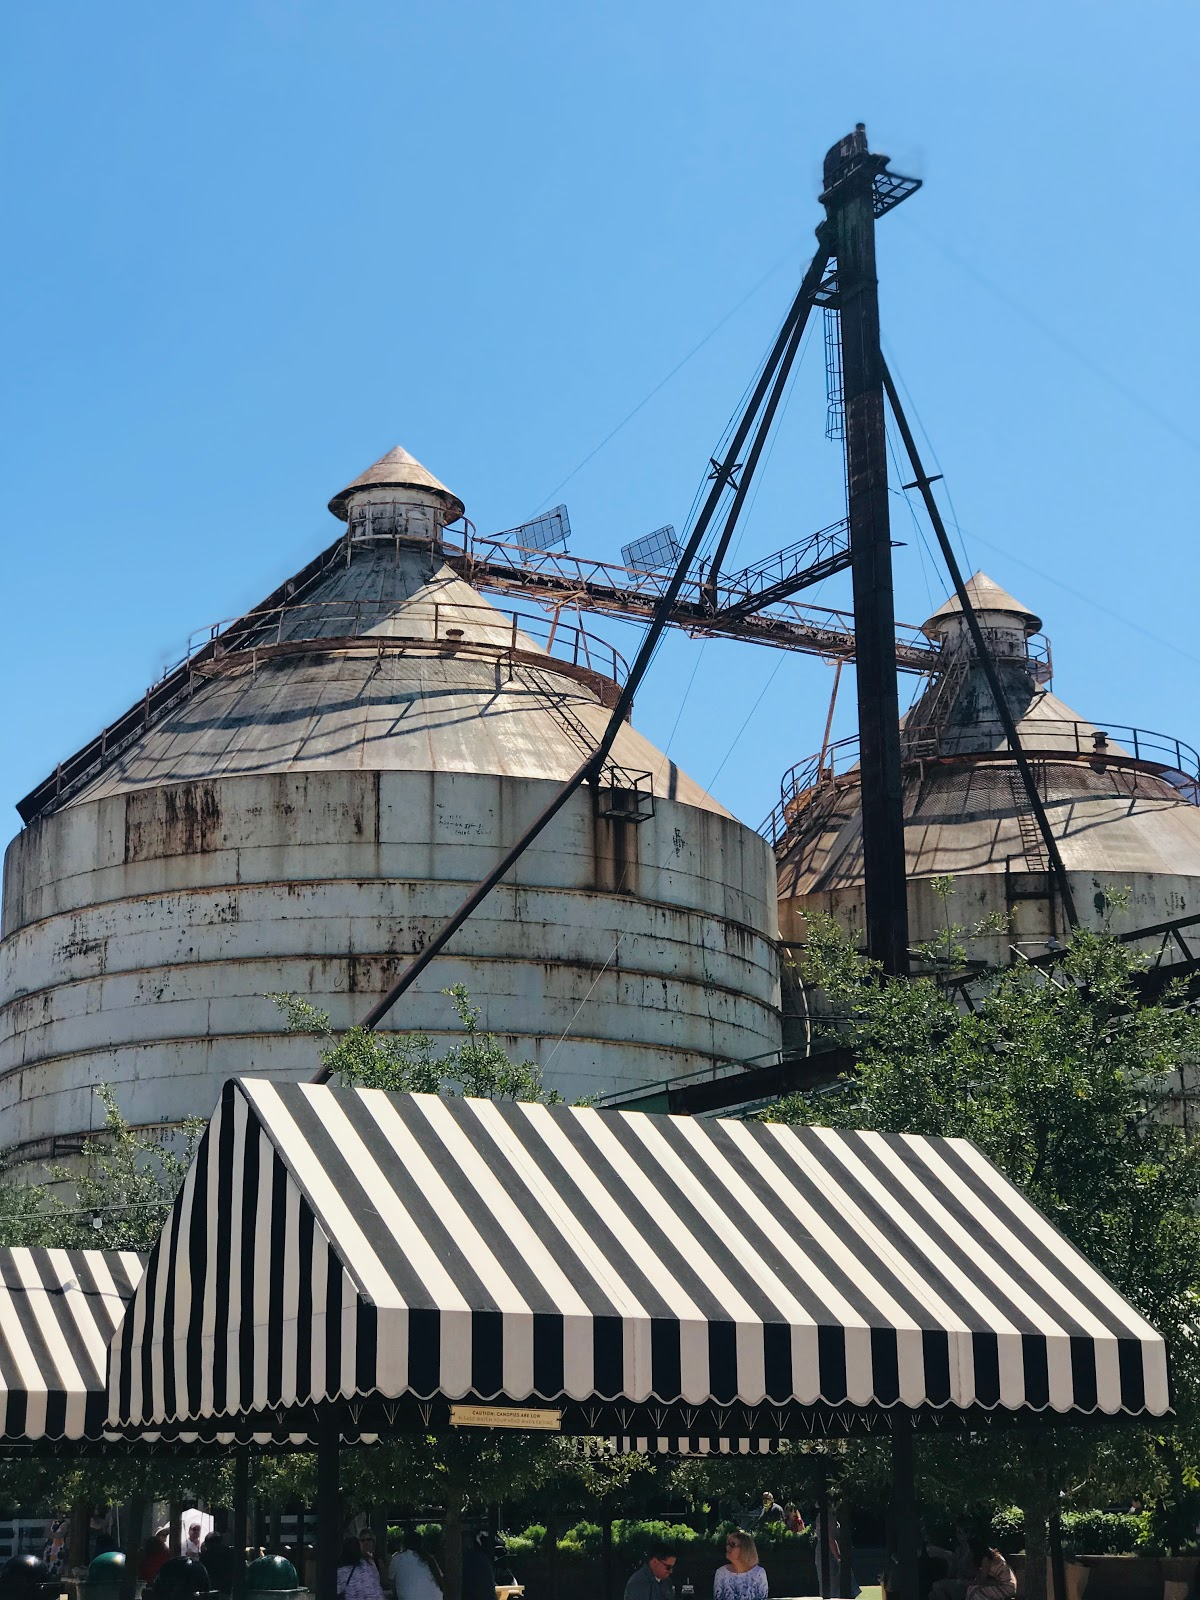 Our Fun Weekend Visiting Magnolia Market In Waco, Texas: Yummy Cupcakes, Shopping And More!